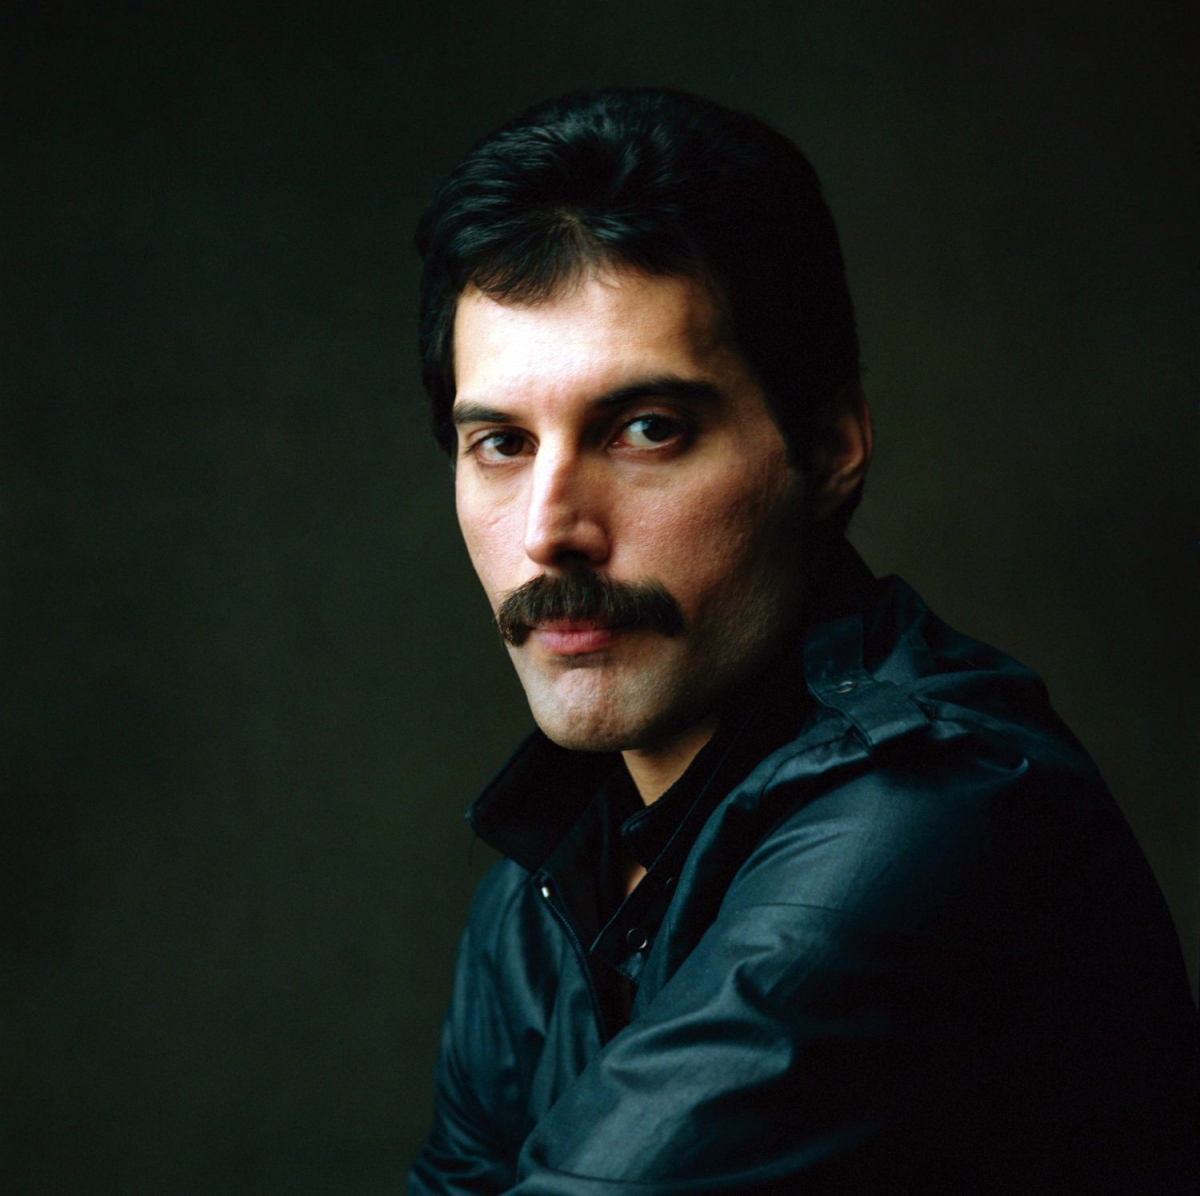 freddie mercury - photo #2